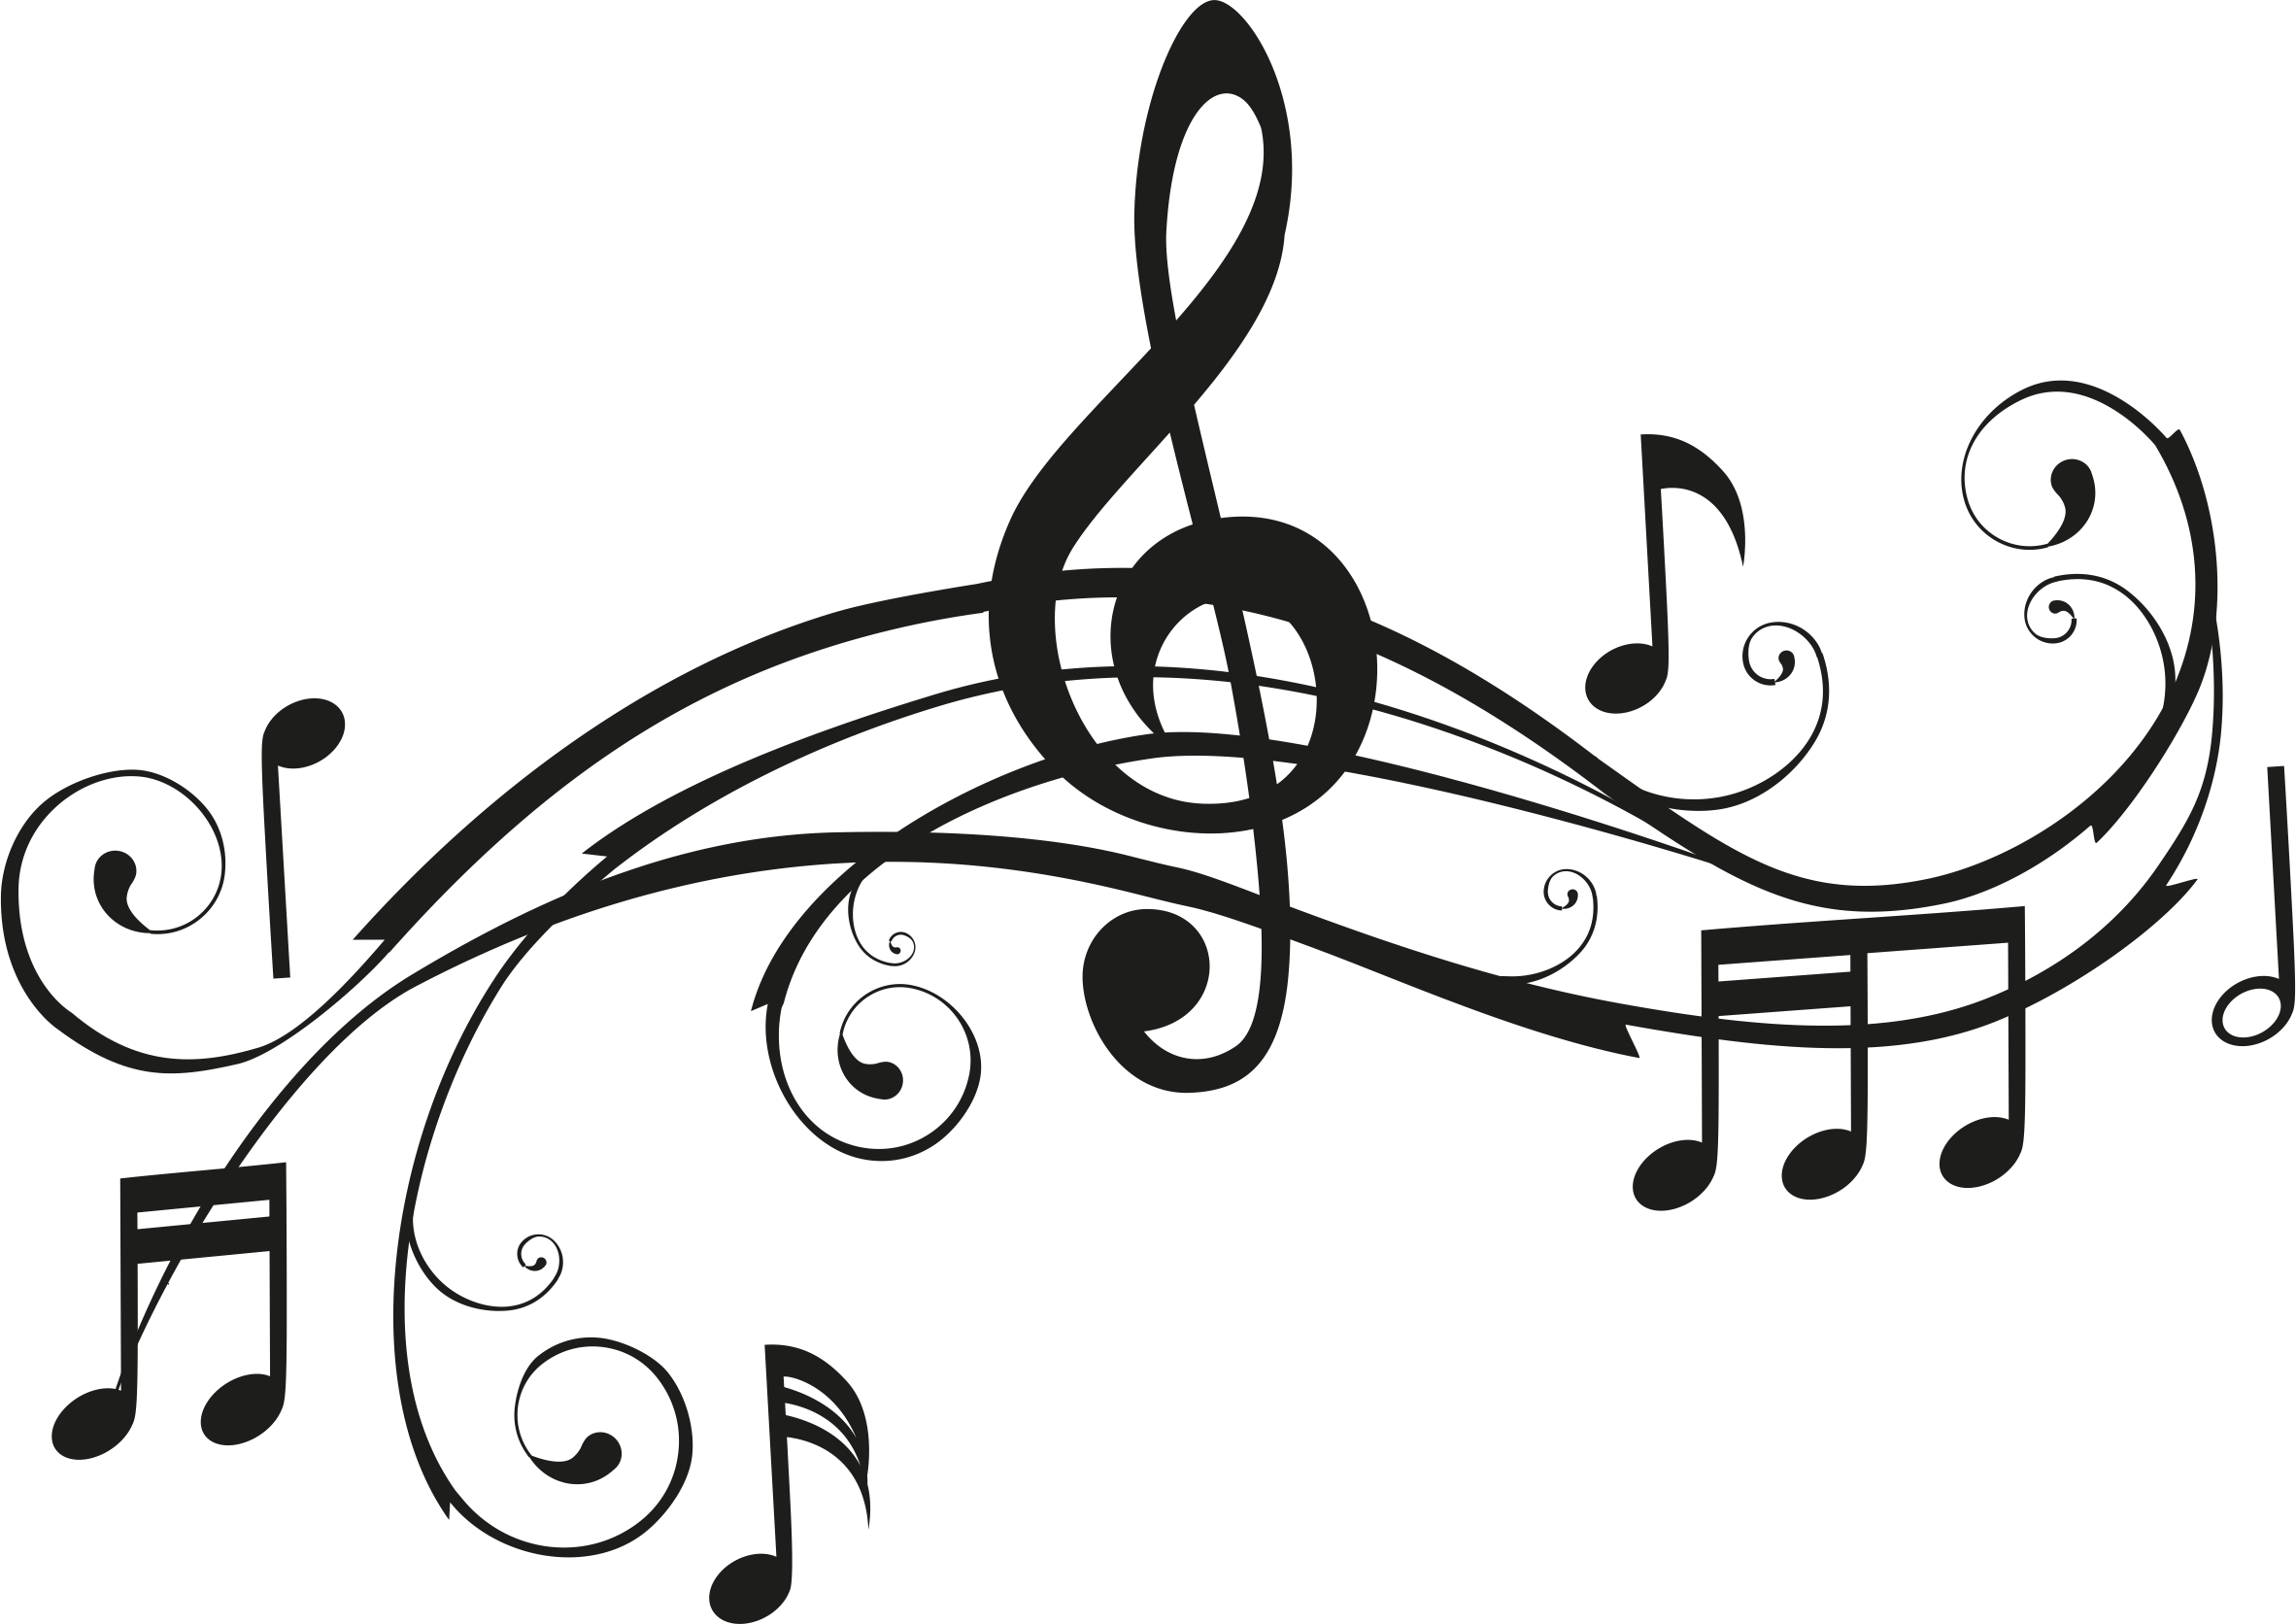 Free music note png. Images musical notes growth